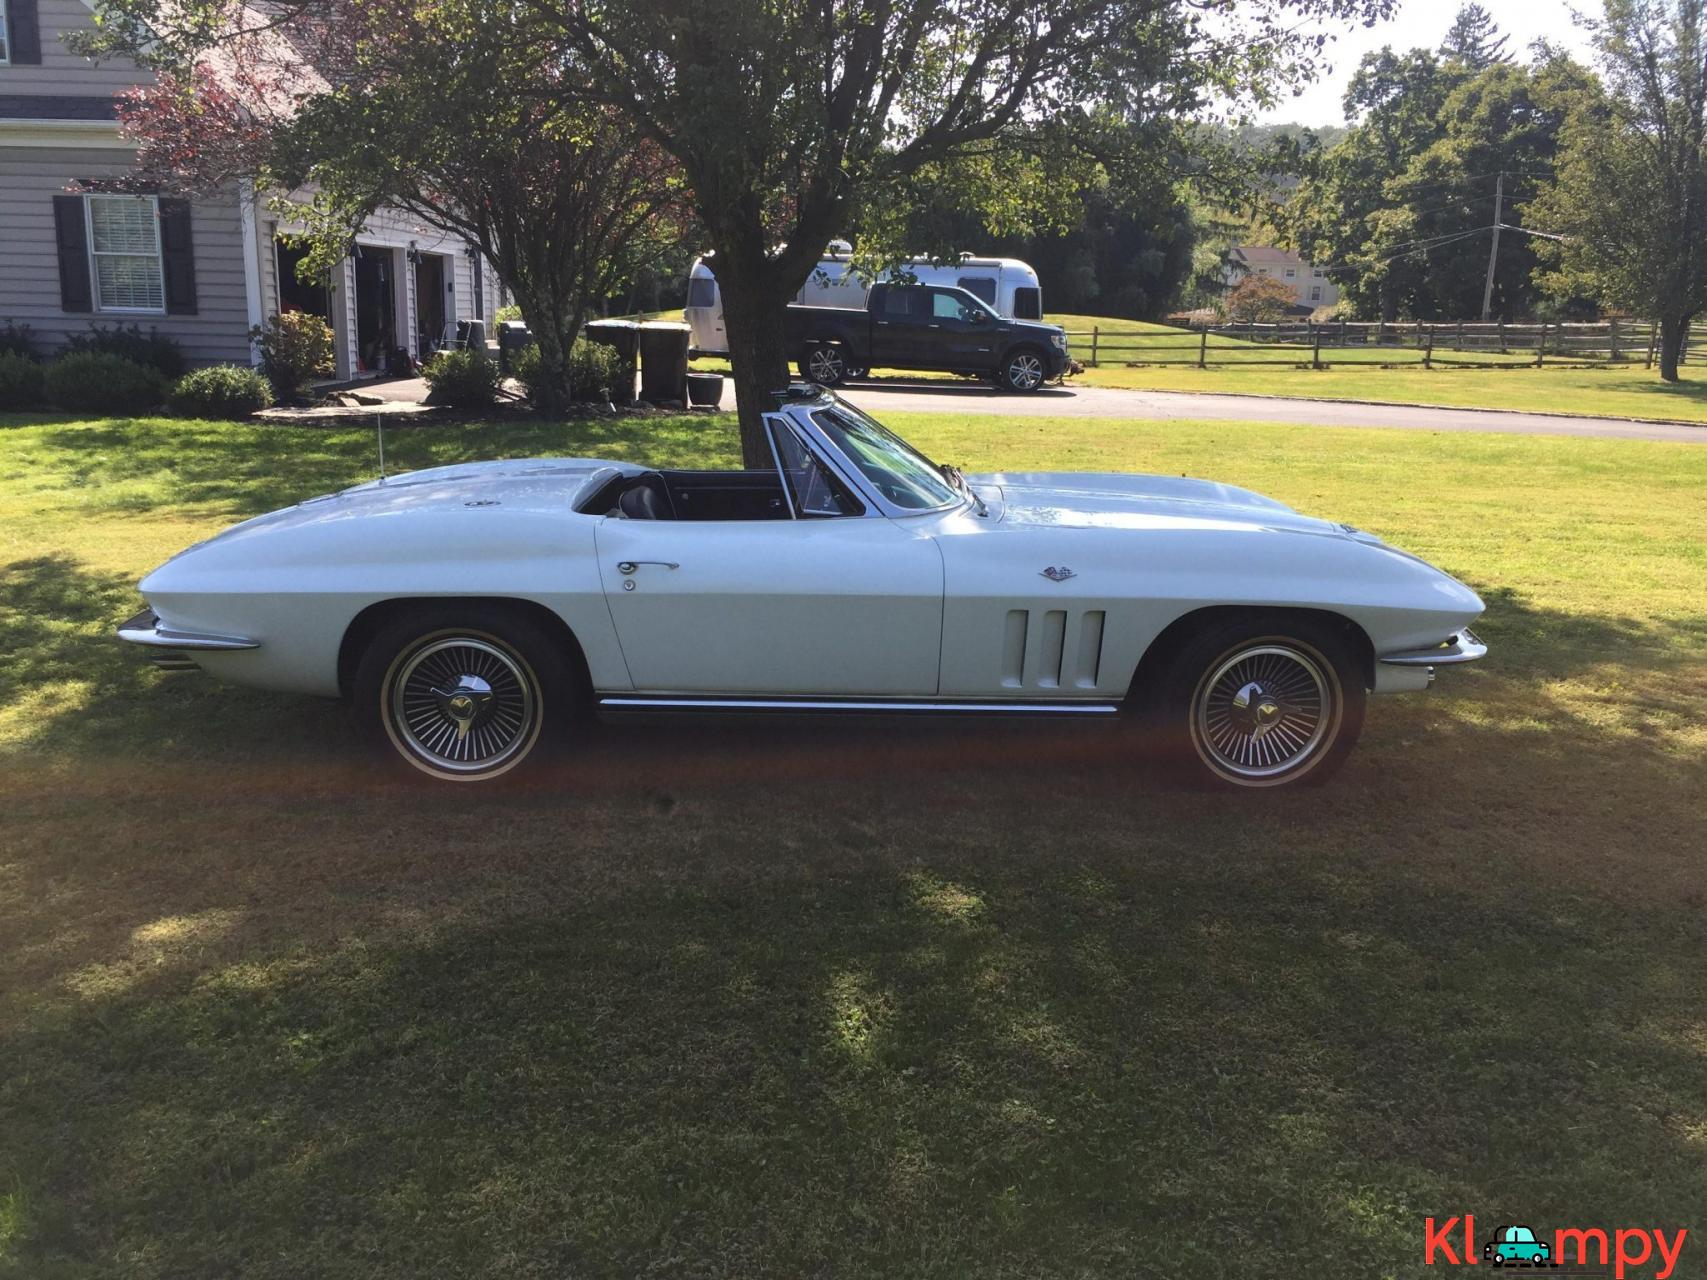 1965 Chevrolet Corvette 327 Convertible V8 - 5/20